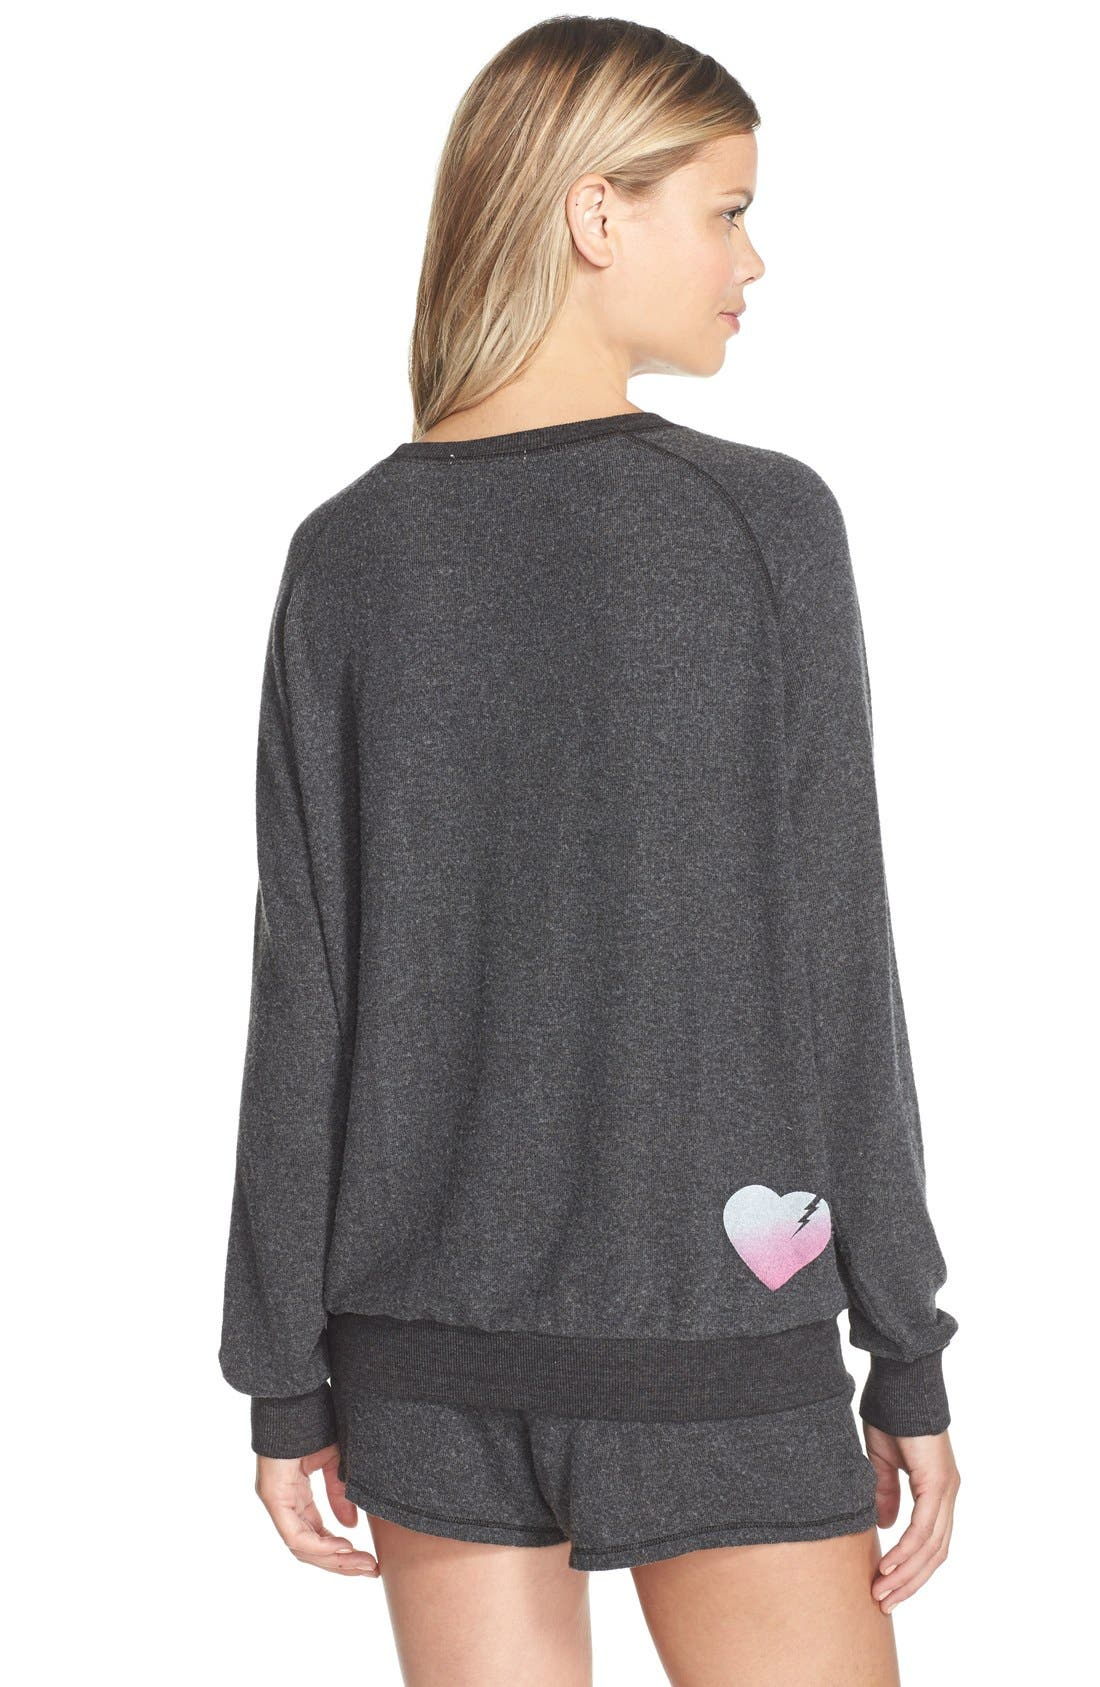 Alternate Image 2  - Junk Food 'How 2 Be A Heartbreaker' Hacci Pullover Sweatshirt